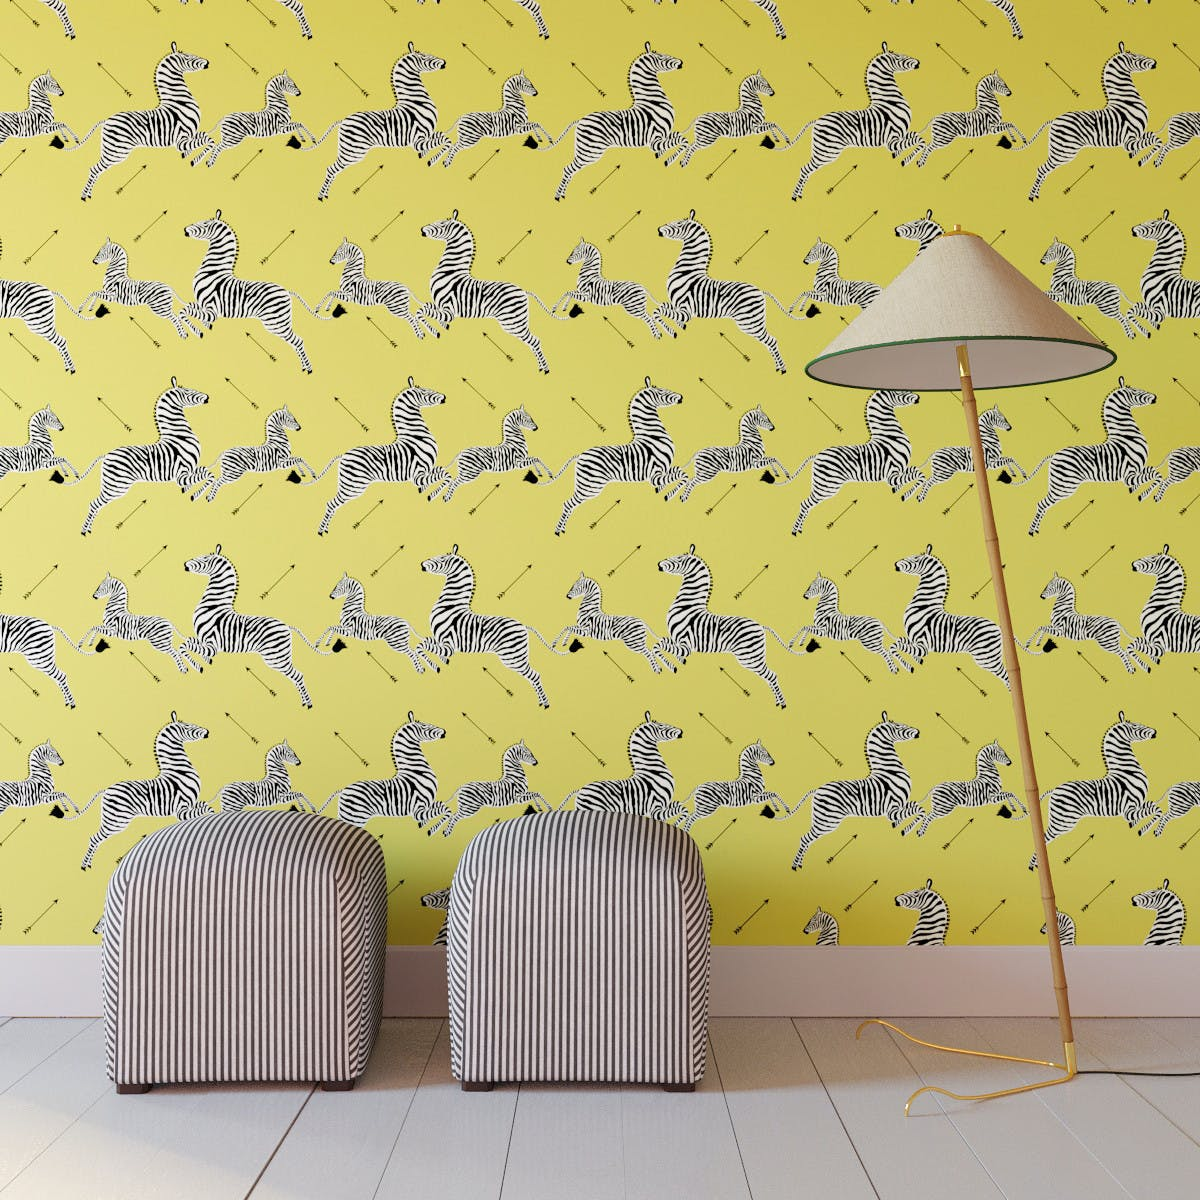 Yellow Zebra Upholstered Custom Peel And Stick Wallpaper Roll The Inside Furniture